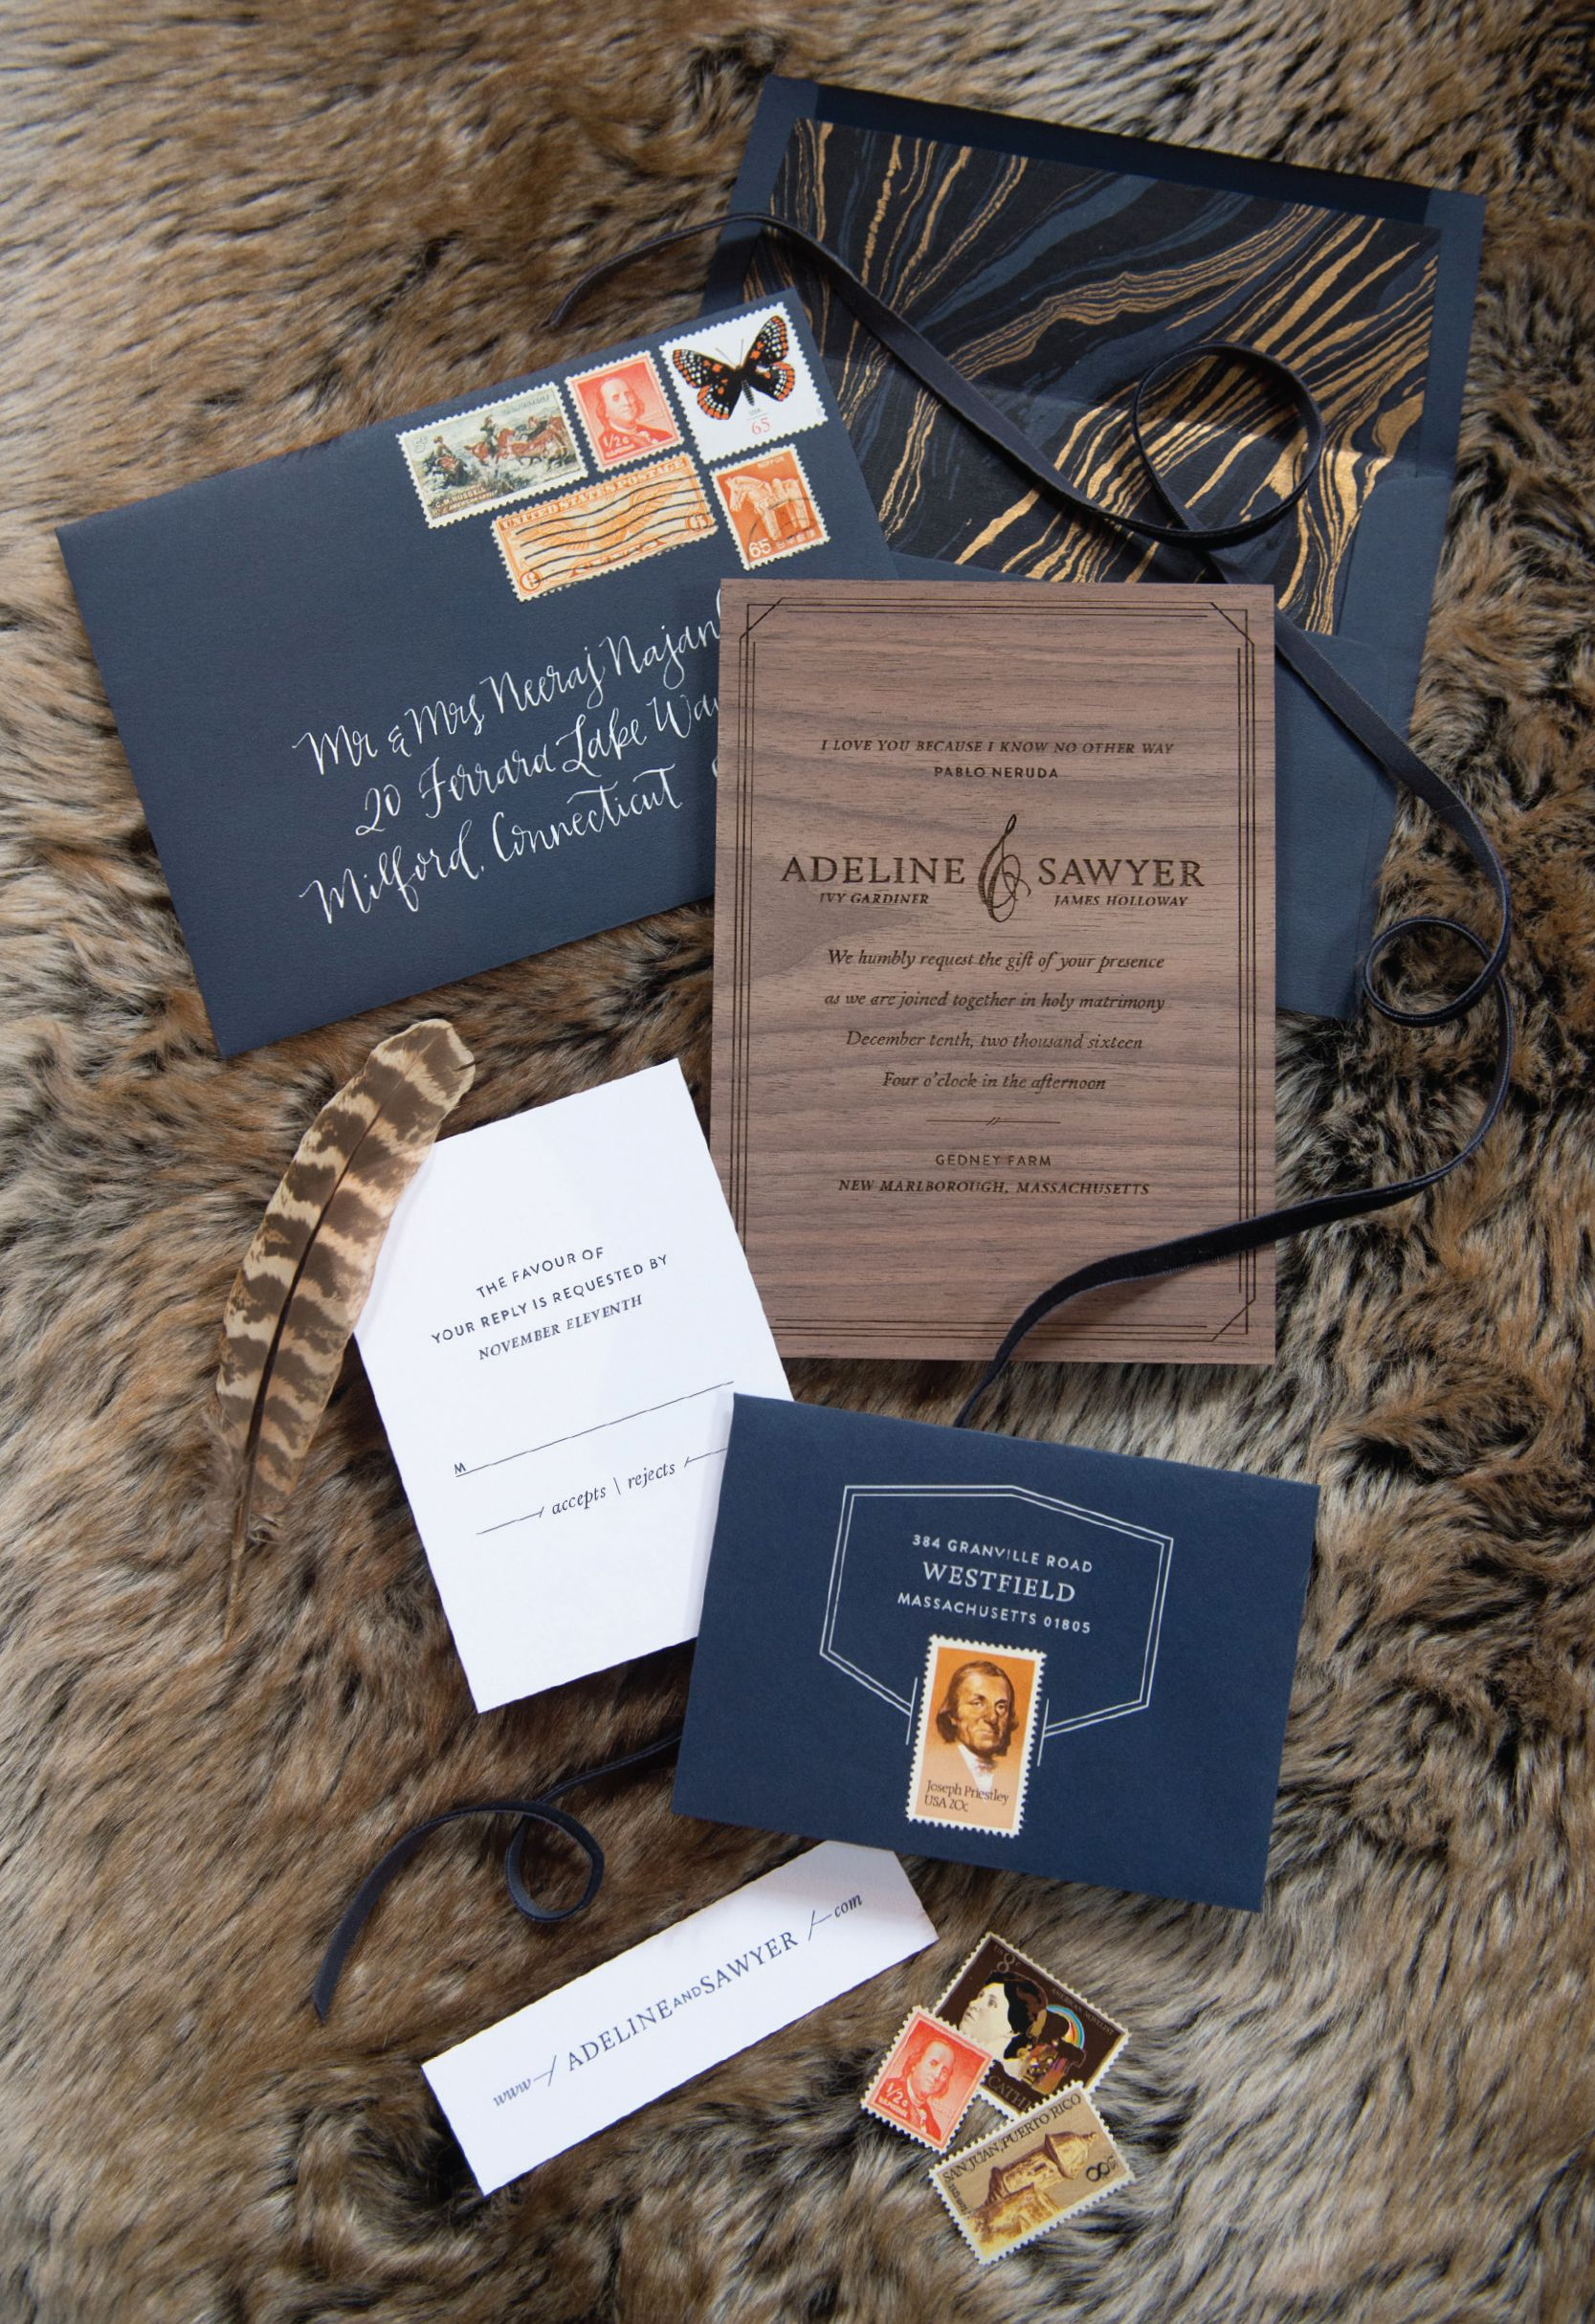 Bliss Celebrations wedding invitation suite designed by